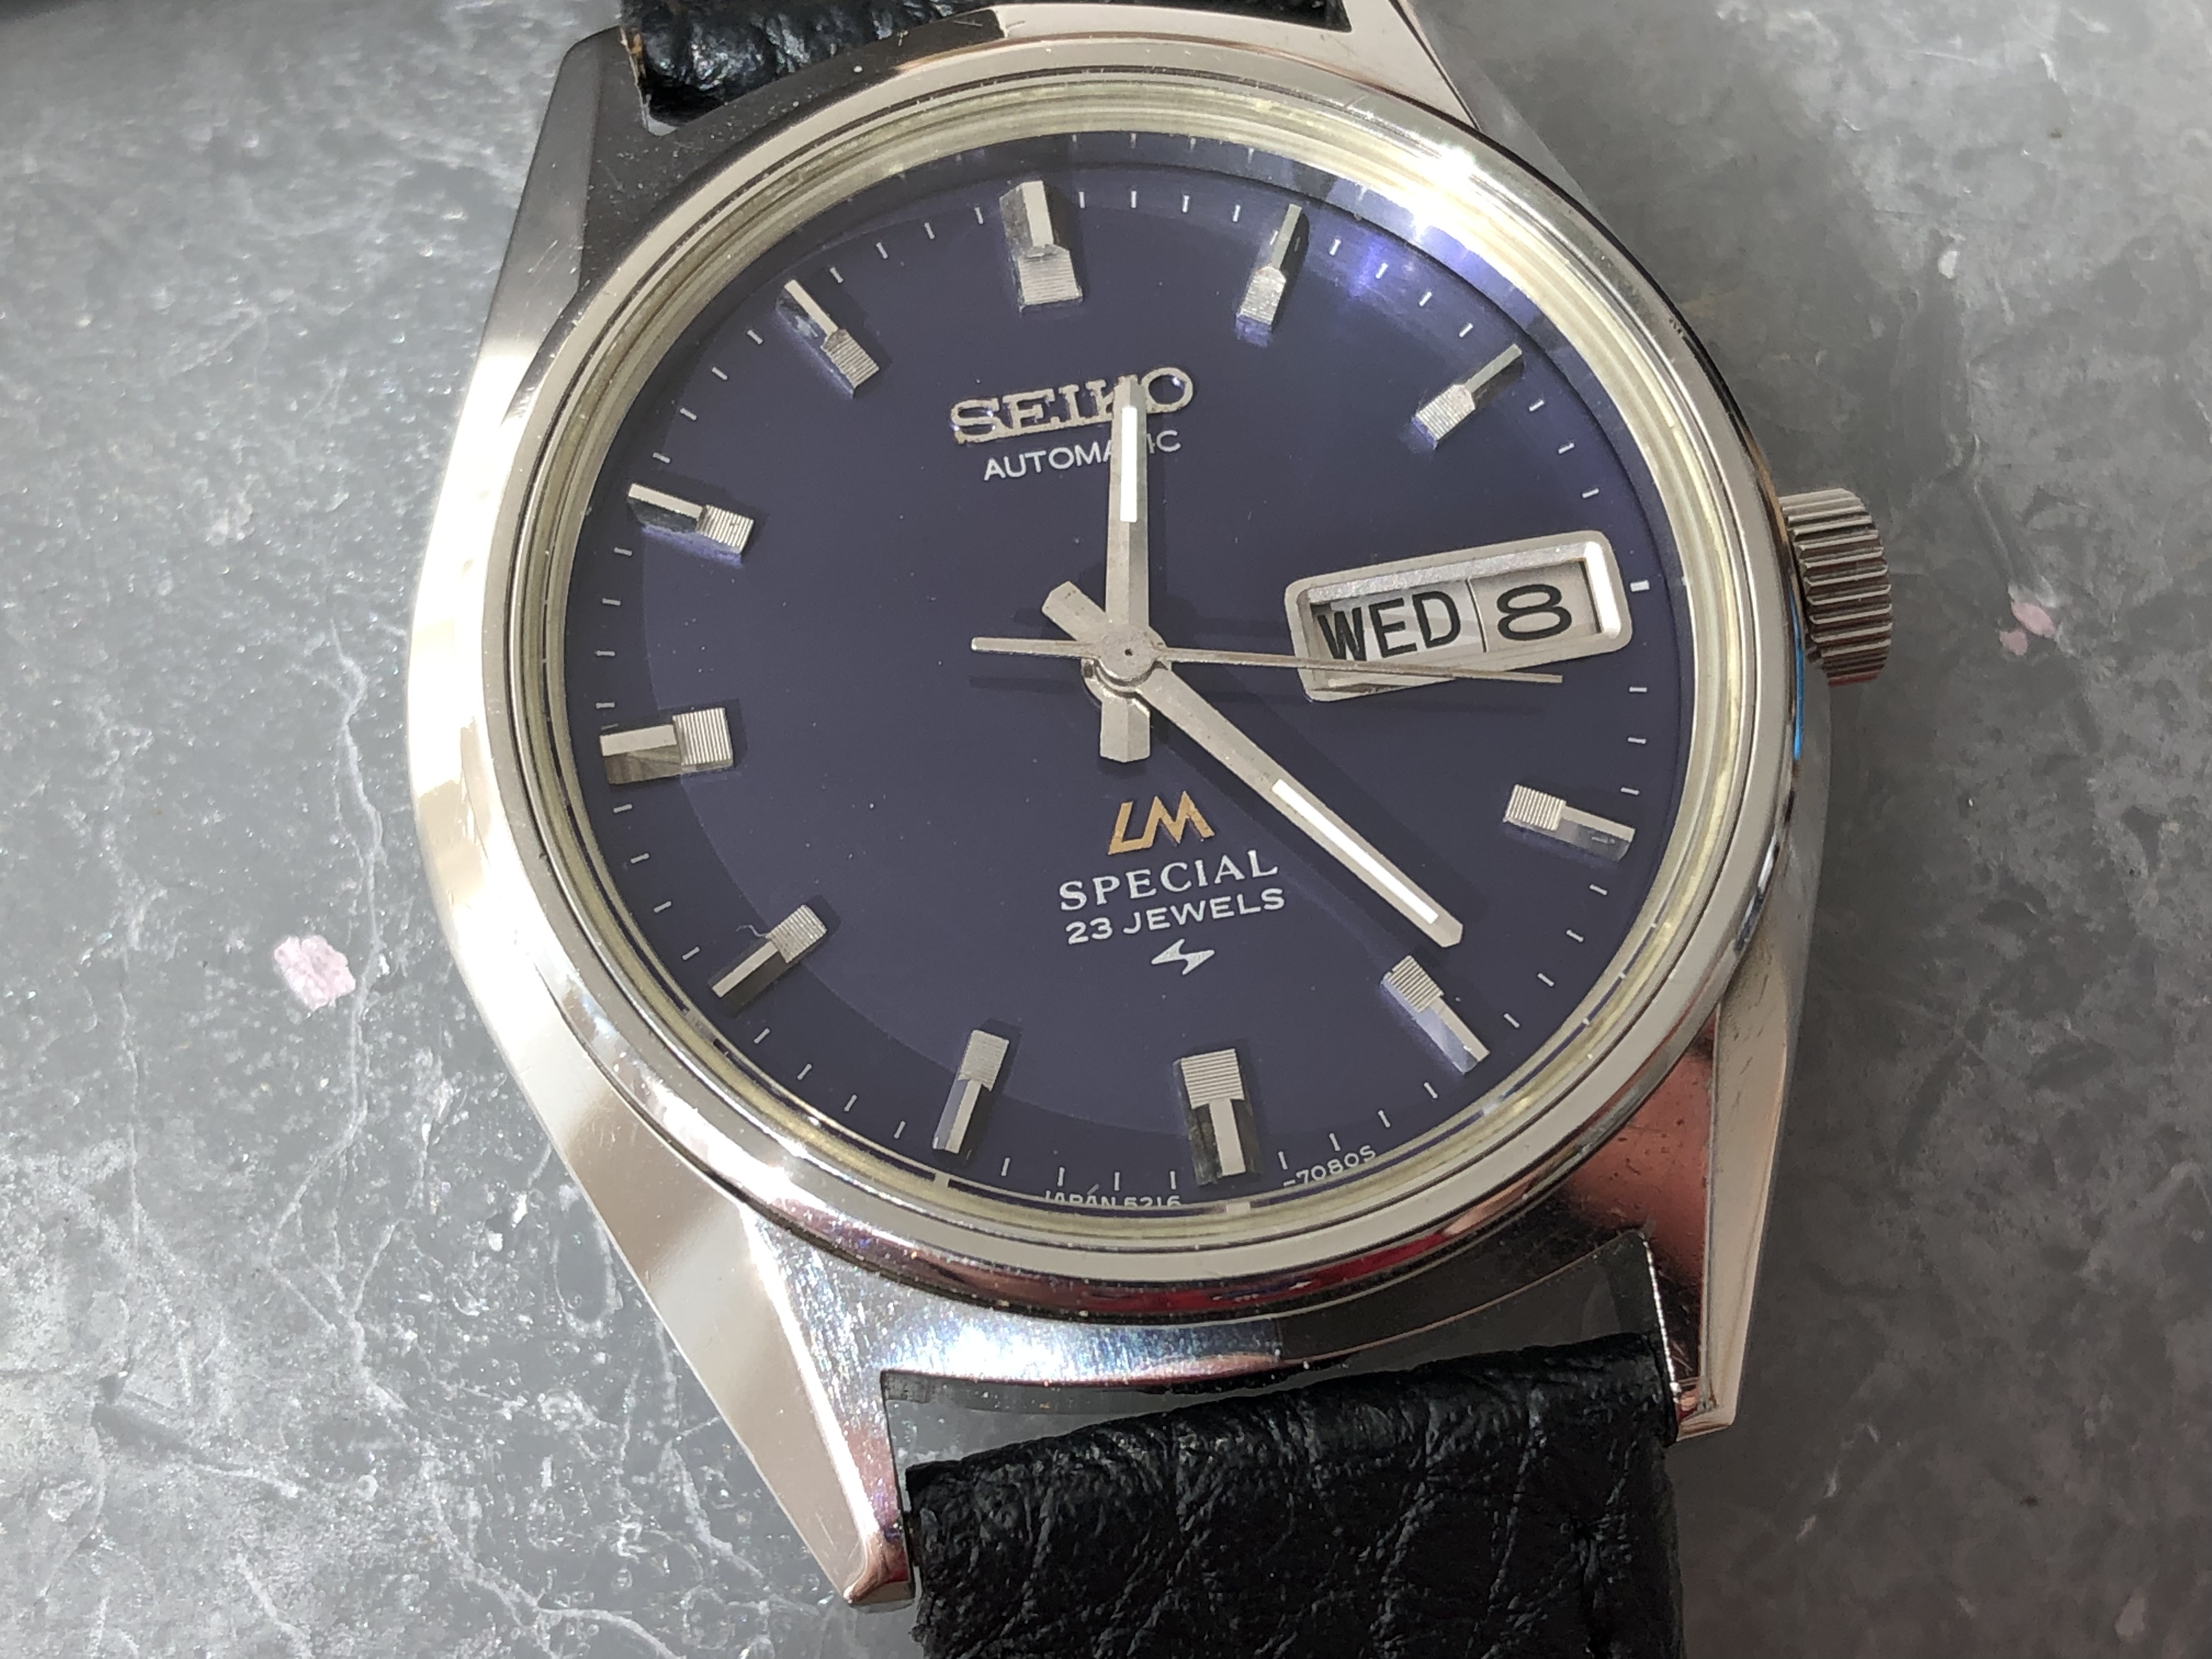 Seiko Lord-Matic Special 5216-7080 (For sale)